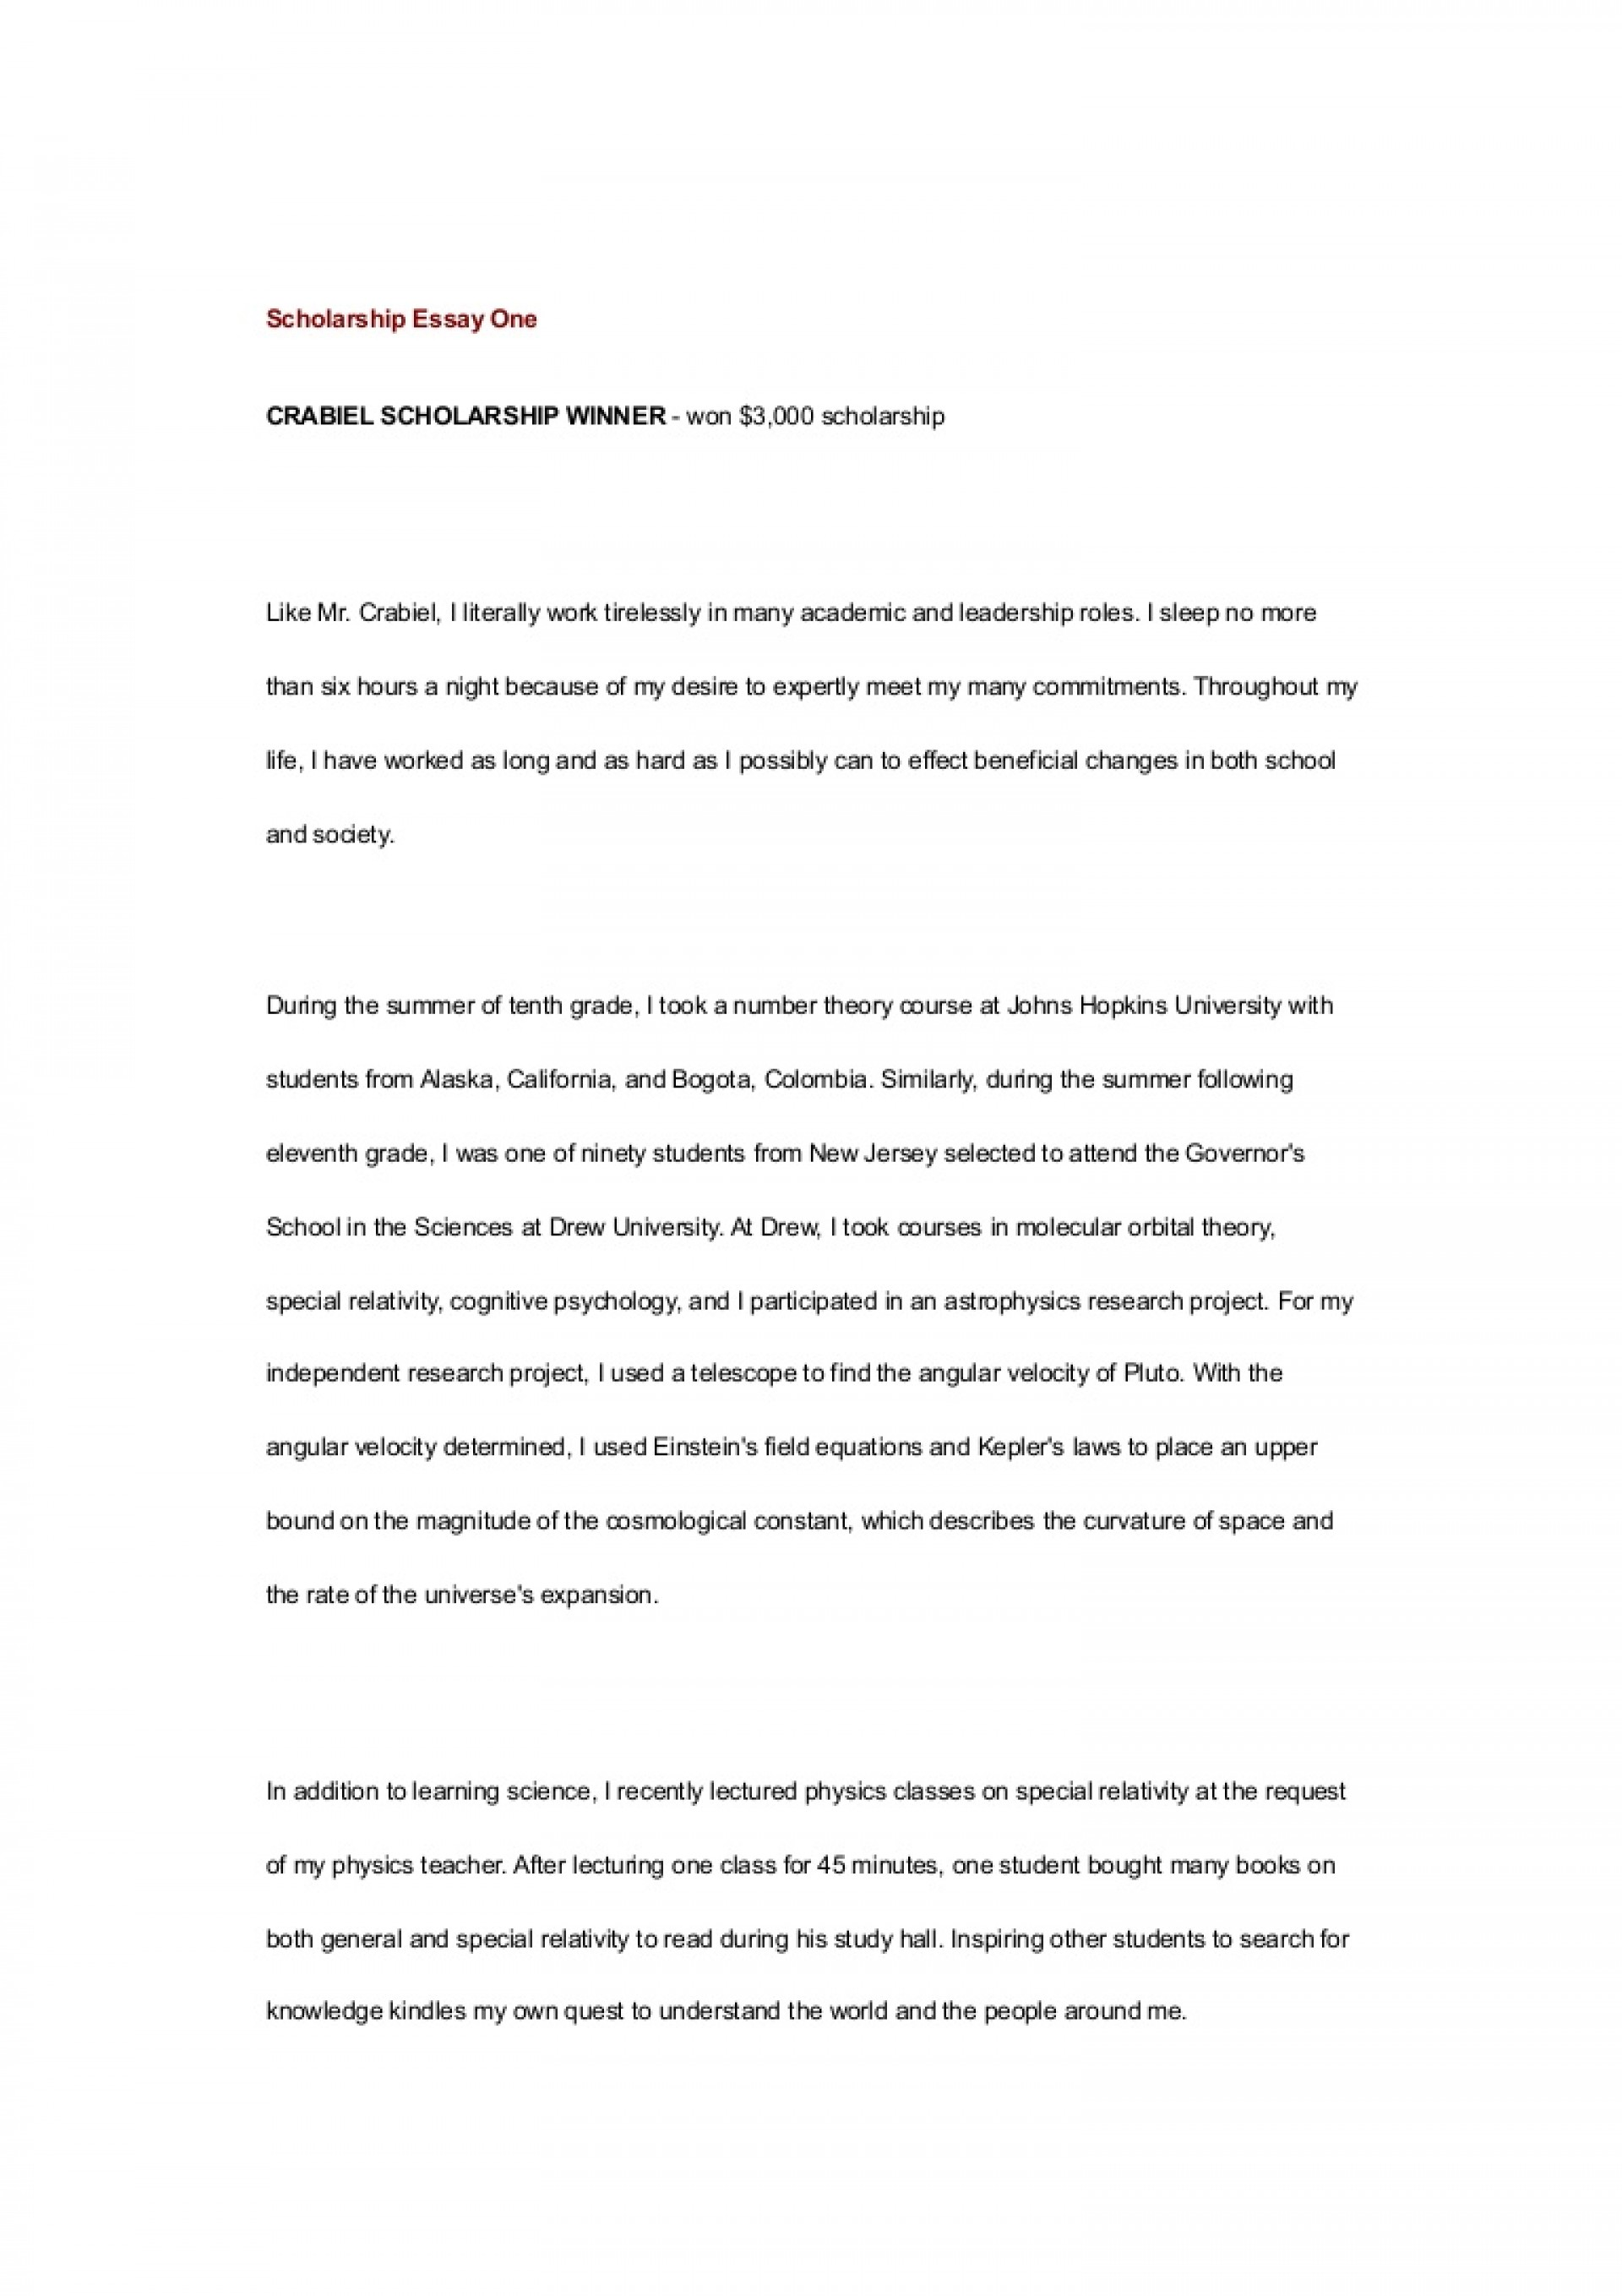 005 Essay Example On Achieving Goal Scholarshipessayone Phpapp01 Thumbnail Stunning A Narrative 1920